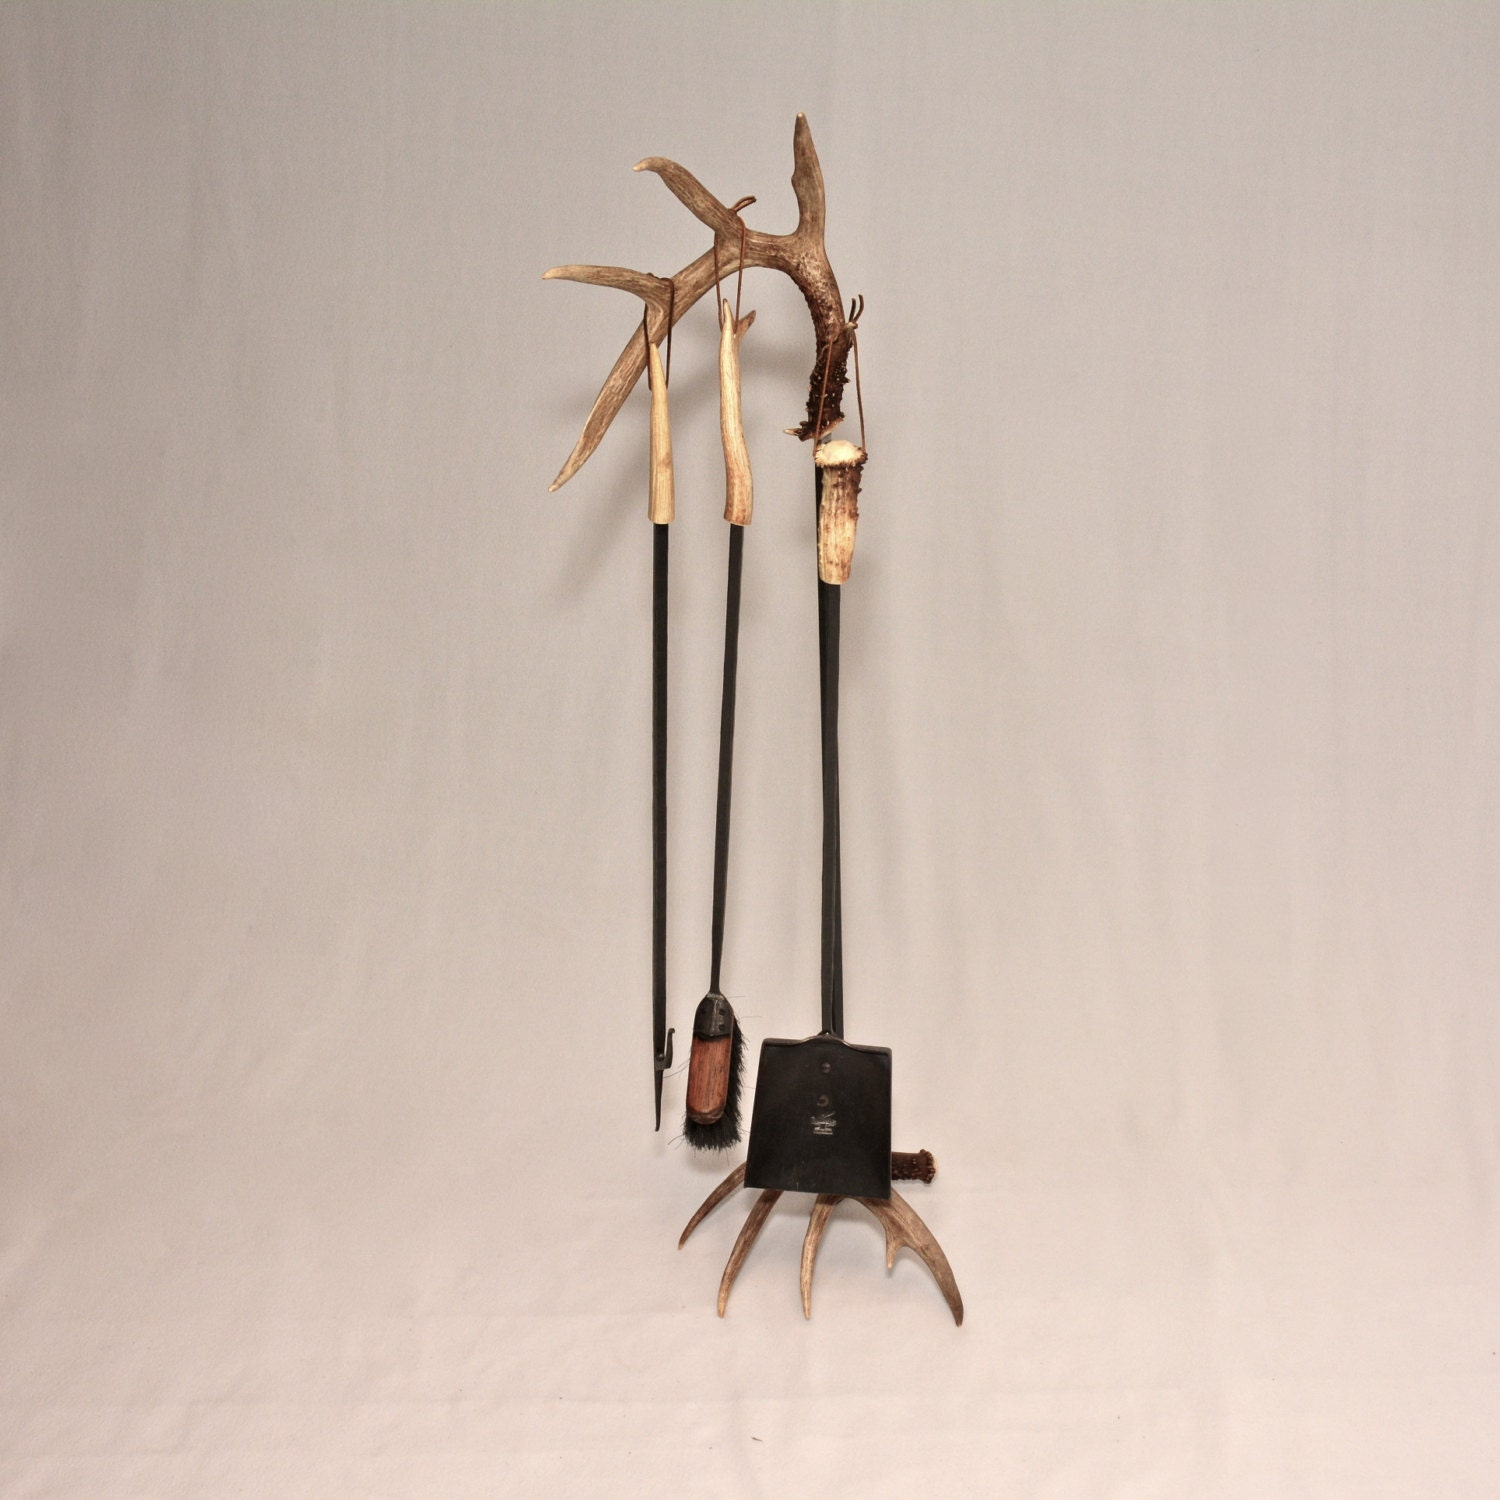 Items Similar To Antler Handled Wrought Iron Fireplace Tool Set On Etsy